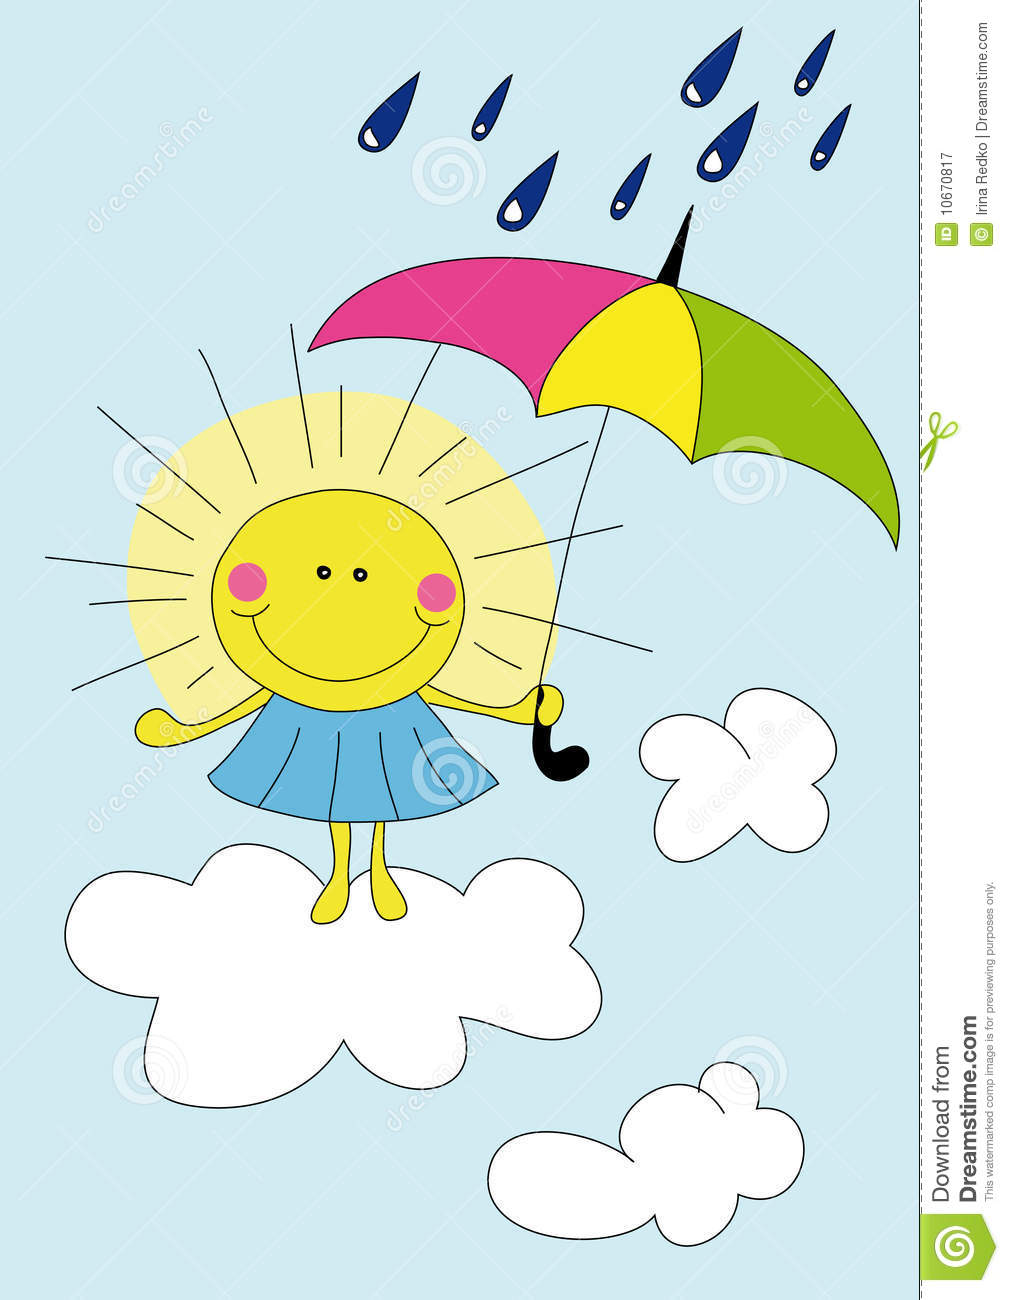 Illustration of cartoon sun on the cloud over blue sky in the rain.